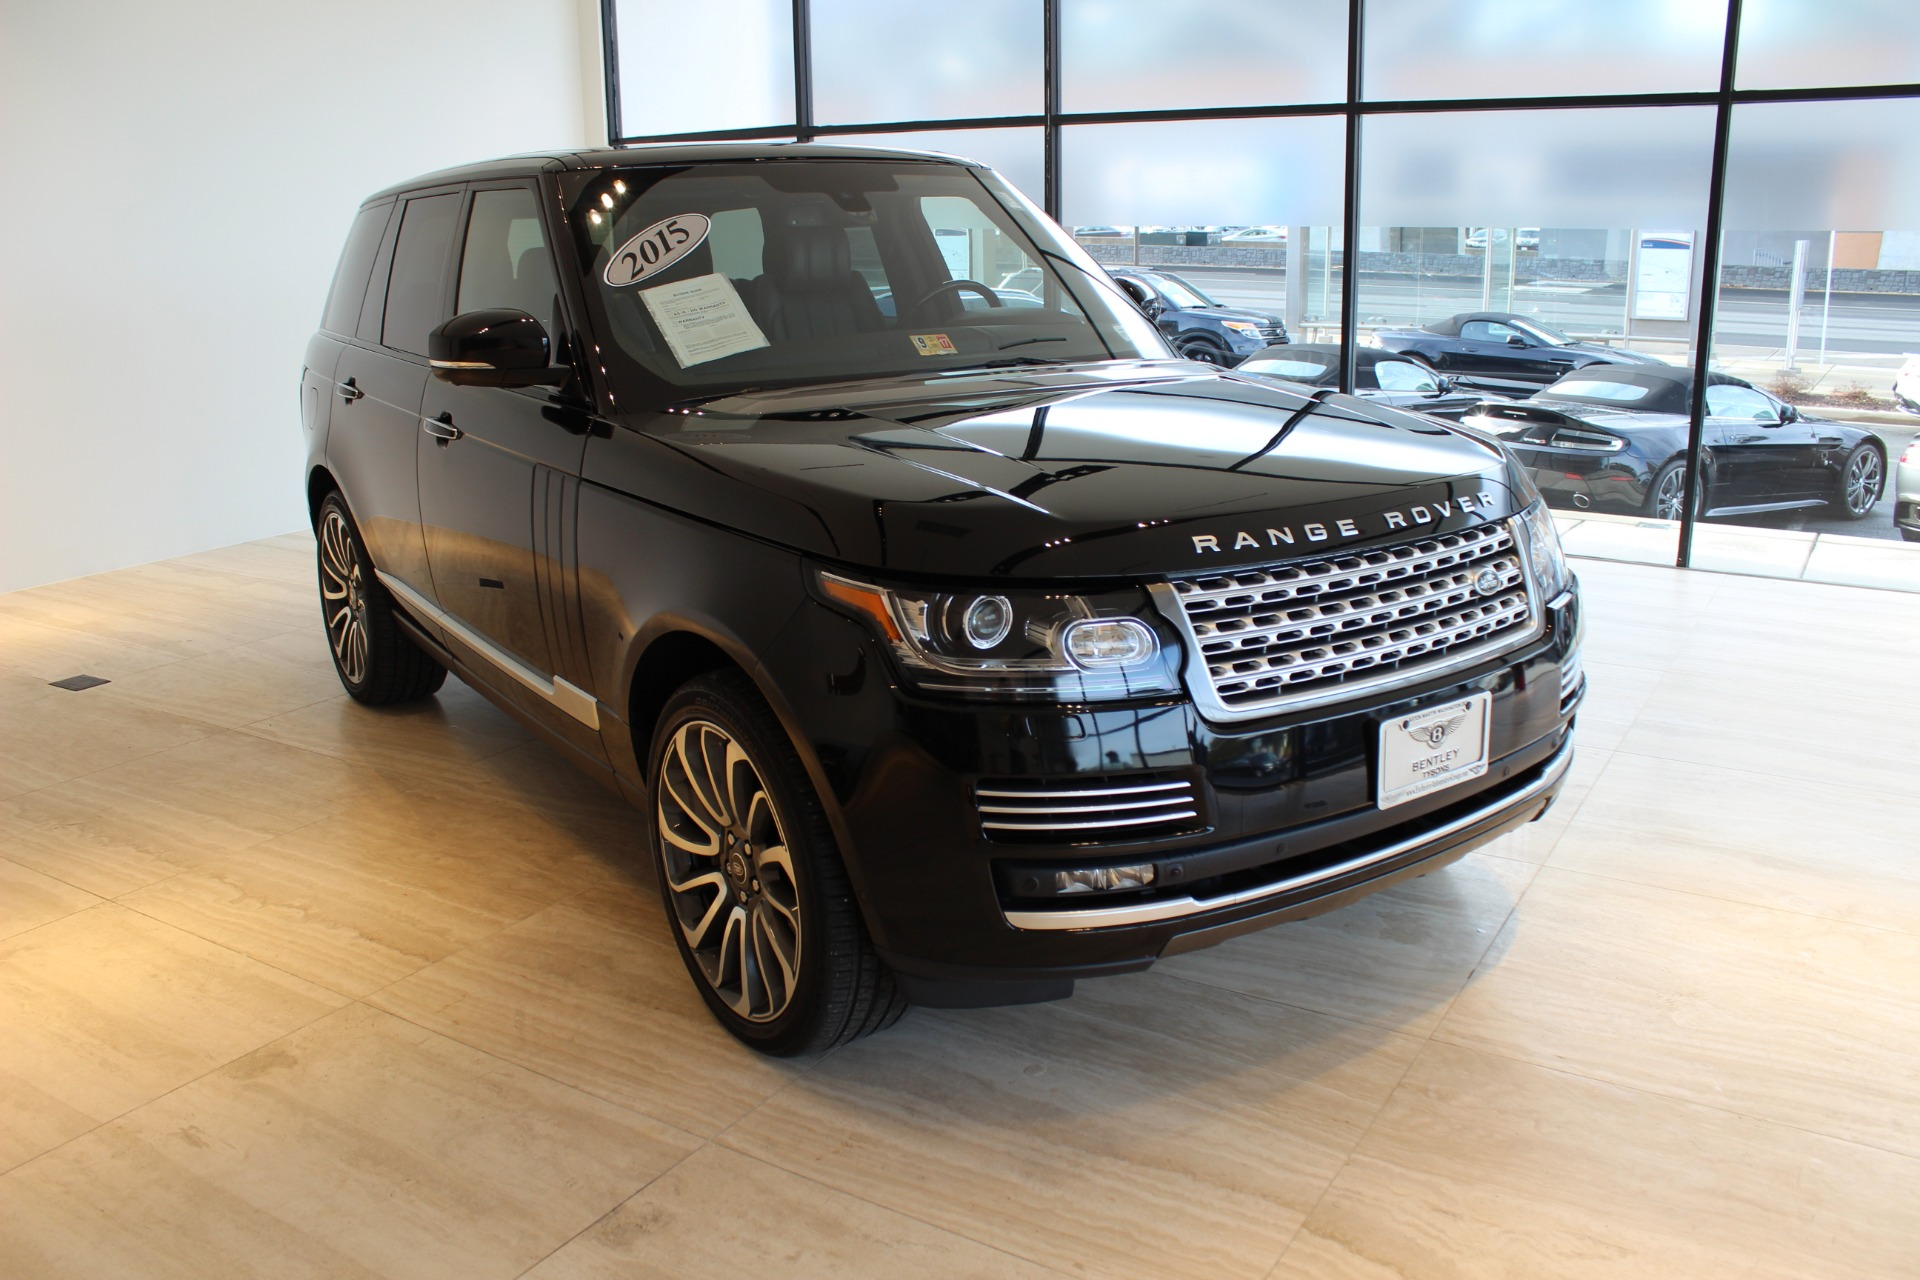 2015 land rover range rover autobiography stock 7n013105a for sale near vienna va va land. Black Bedroom Furniture Sets. Home Design Ideas